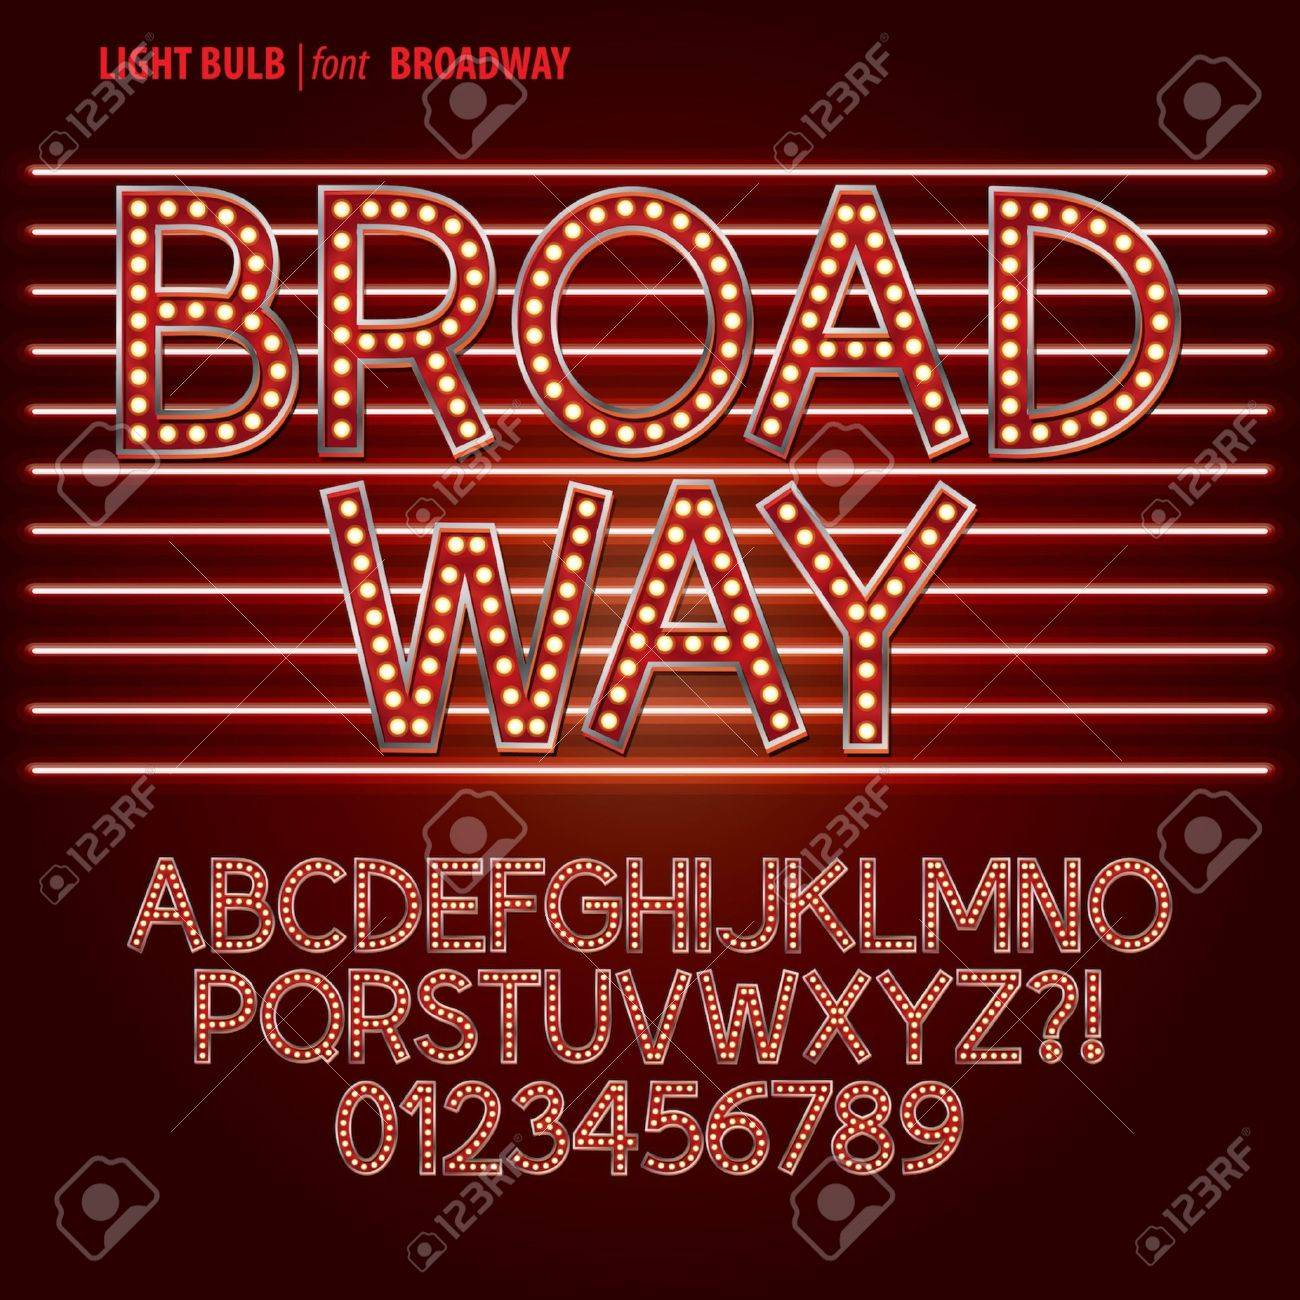 Red Broadway Light Bulb Alphabet and Digit Vector Stock Vector - 25438850